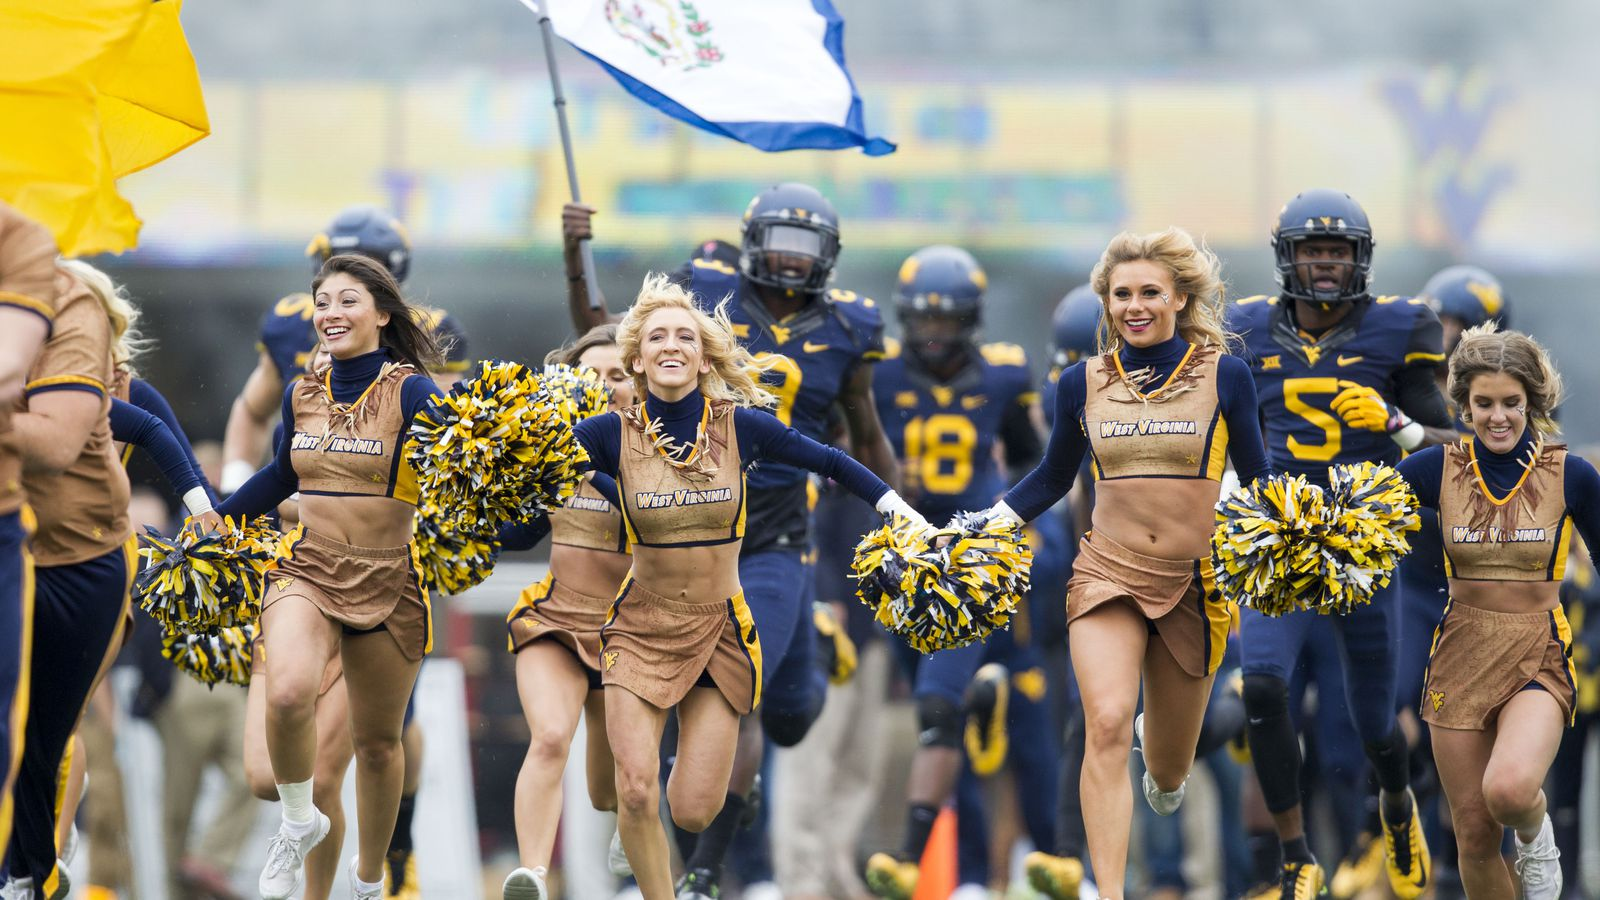 Get the latest West Virginia Mountaineers news scores stats standings rumors and more from ESPN